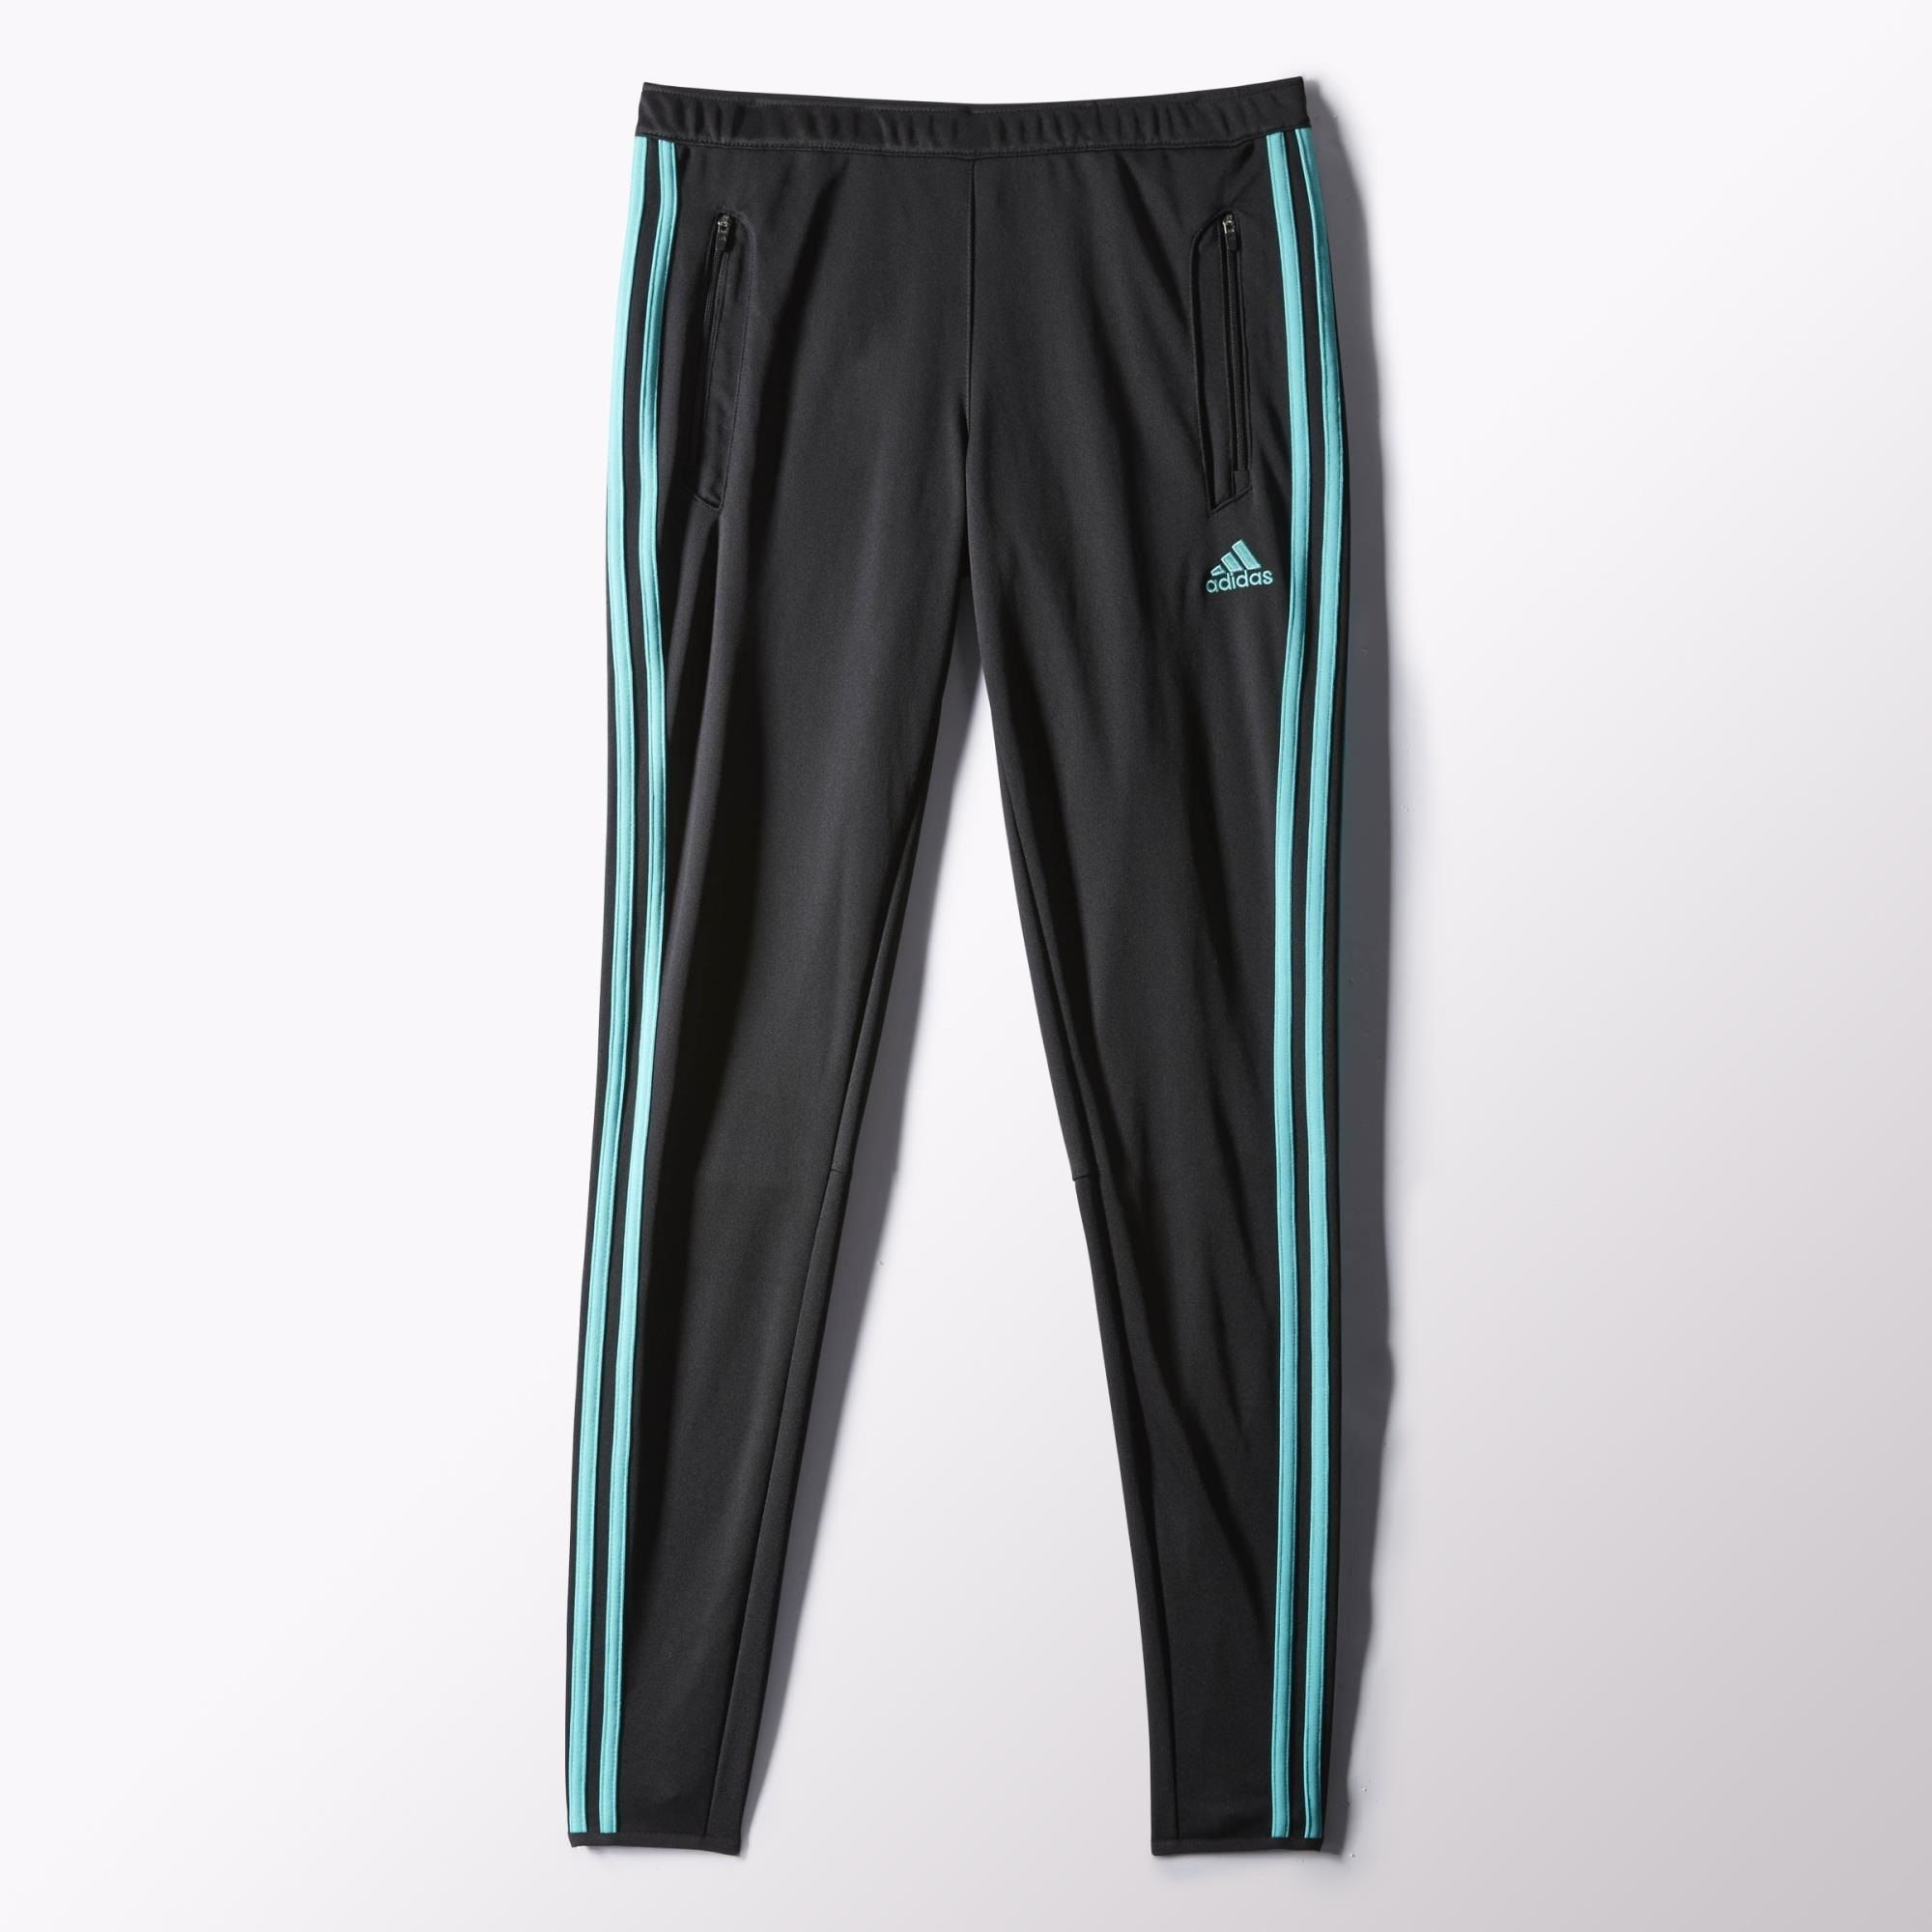 Play beyond the heat and sweat with the women's adidas Tiro